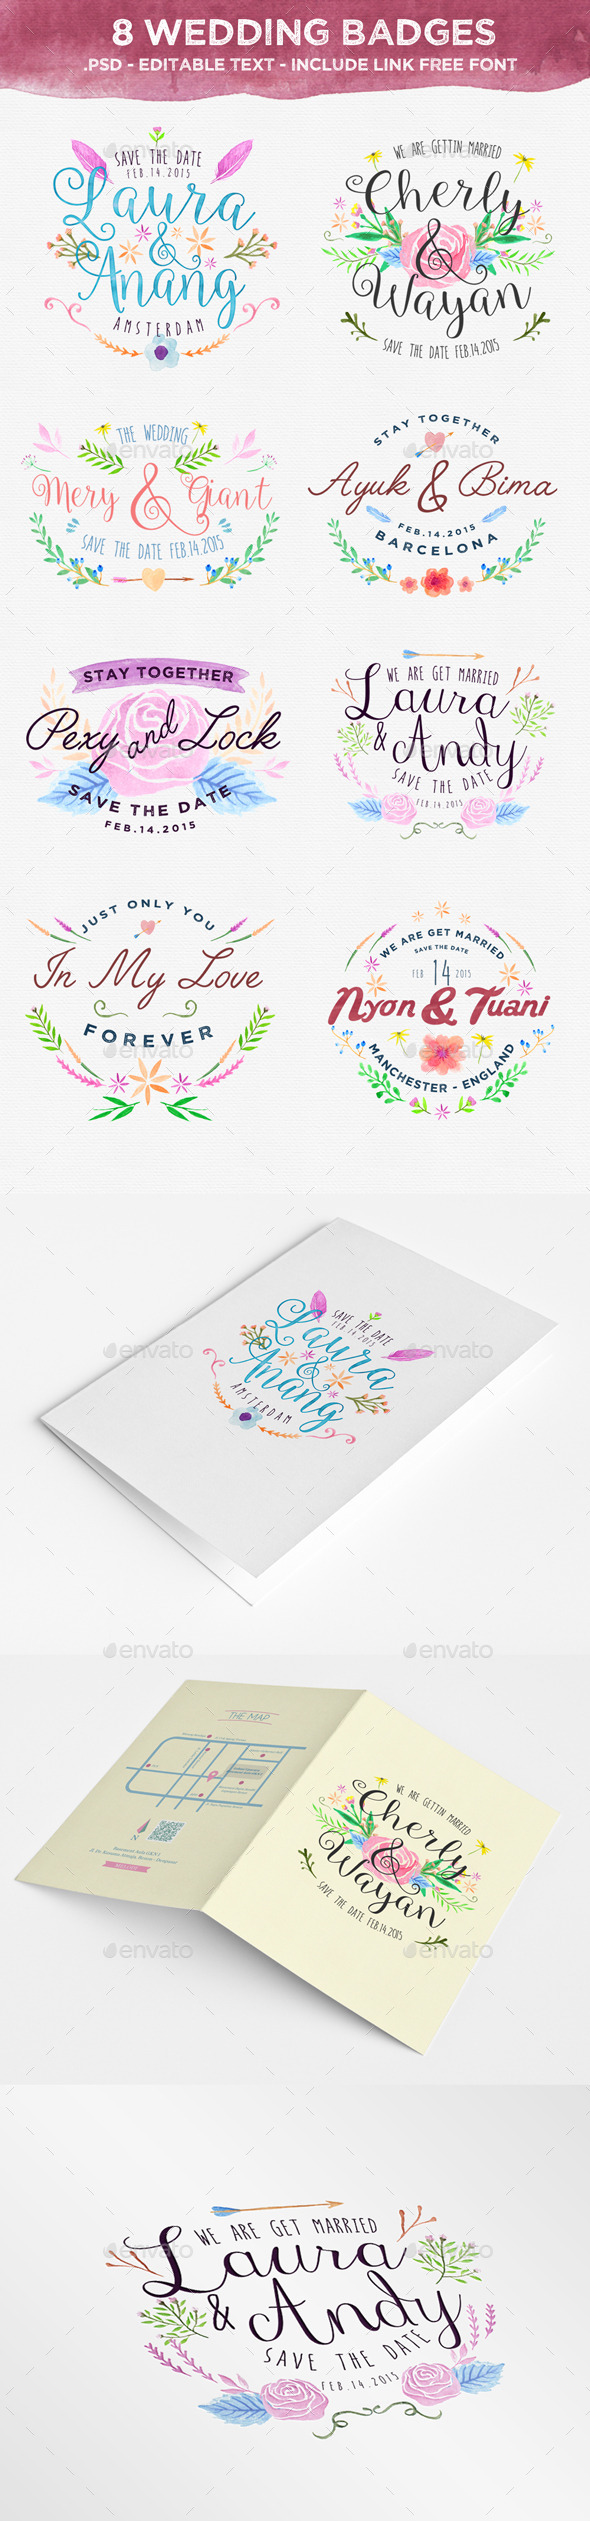 GraphicRiver 8 Wedding Badges 10475566